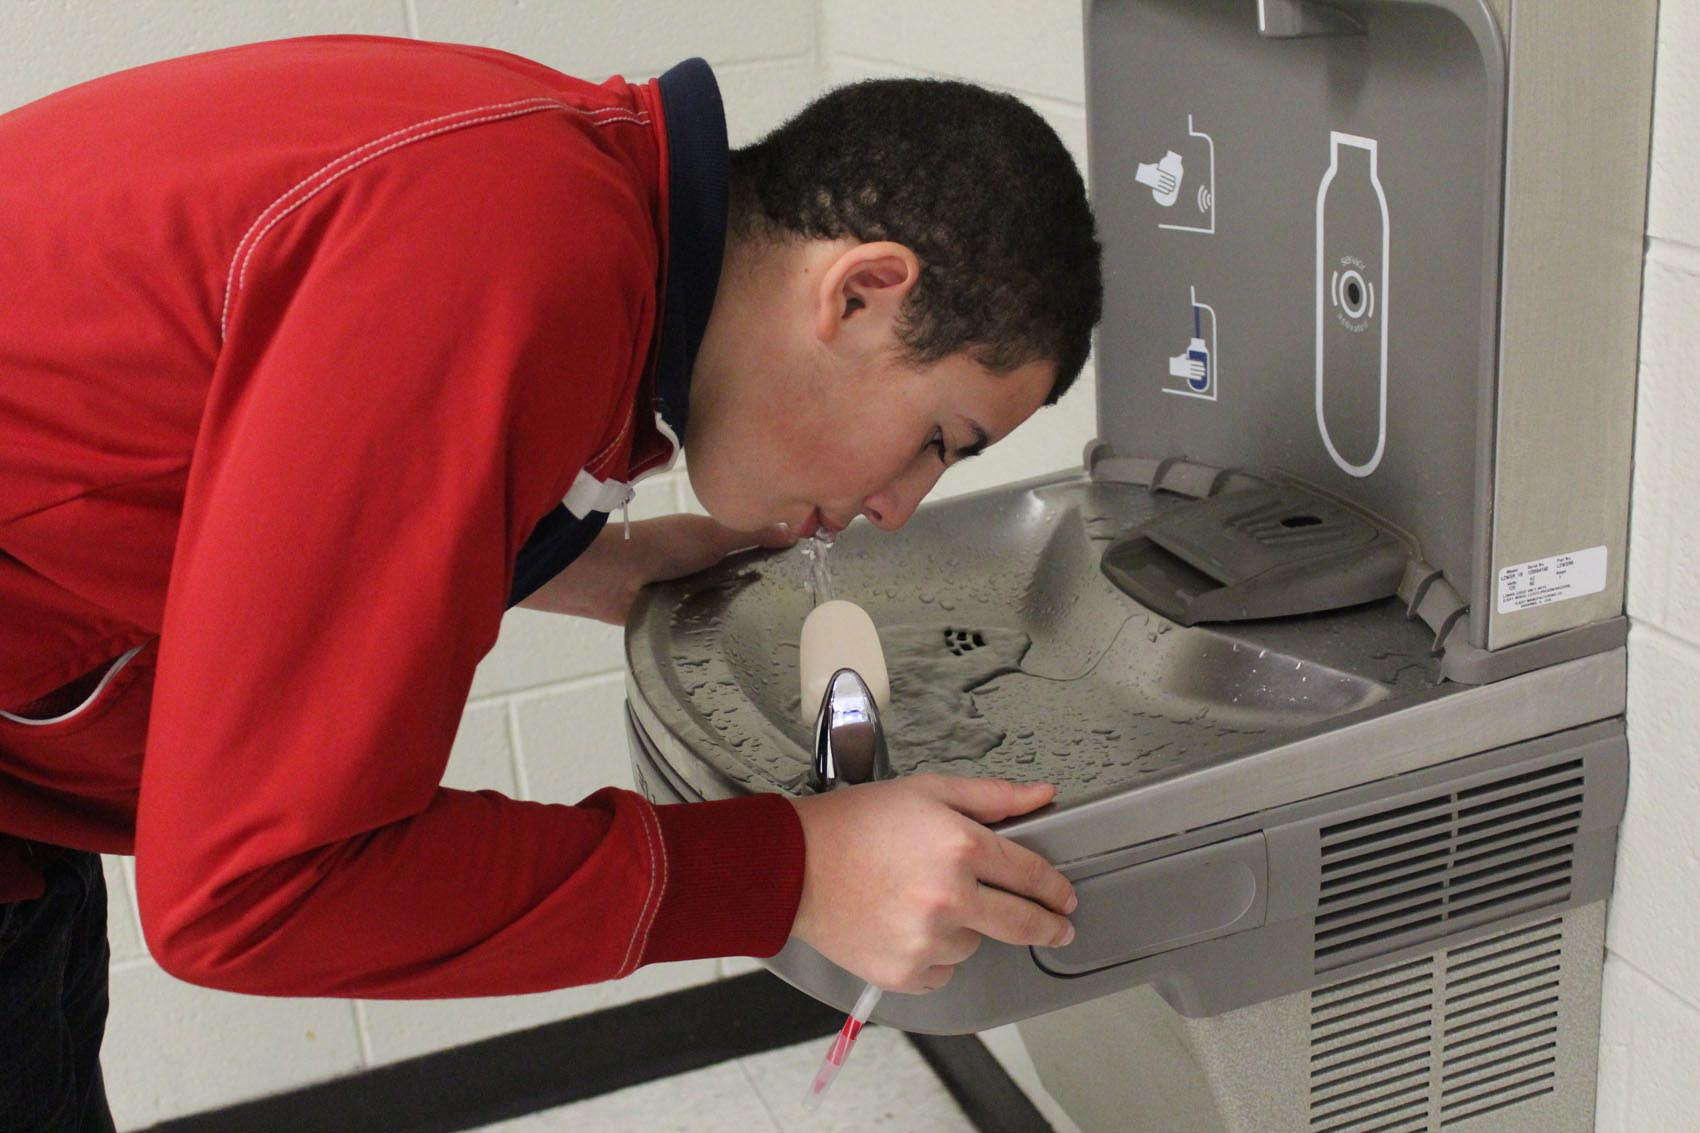 Water fountains schools - Drinking Water Fountain For School